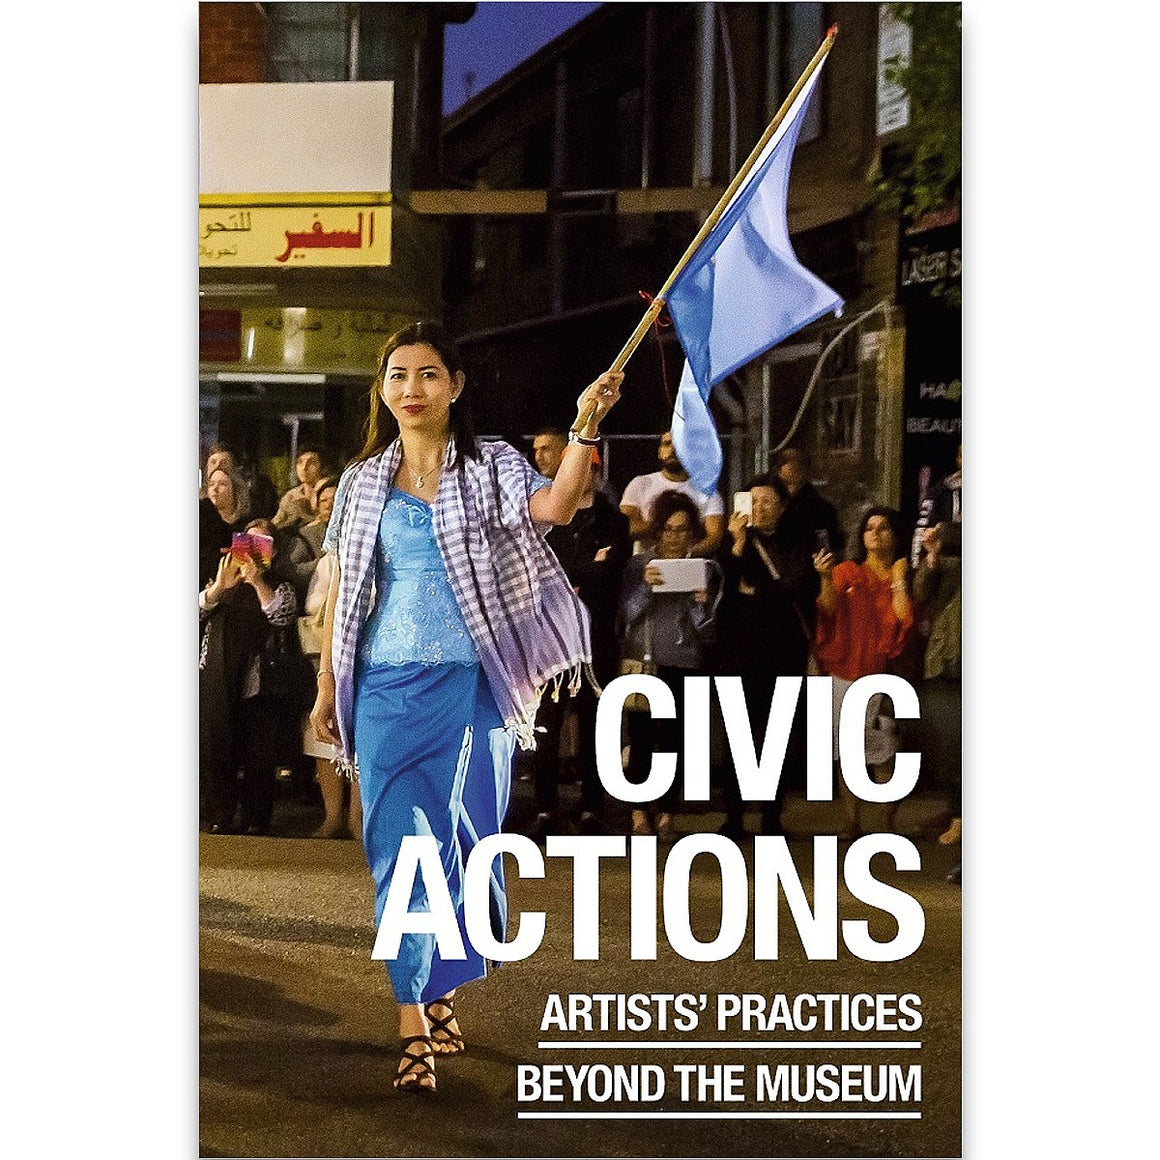 "A book cover entitled 'Civic Actions Artists' Practices Beyond the Museum"" in white text overlaid on  photograph. The photograph depict a woman in a blue dress and purple checked staff waving a blue flag in front of a crowd of onlokers."